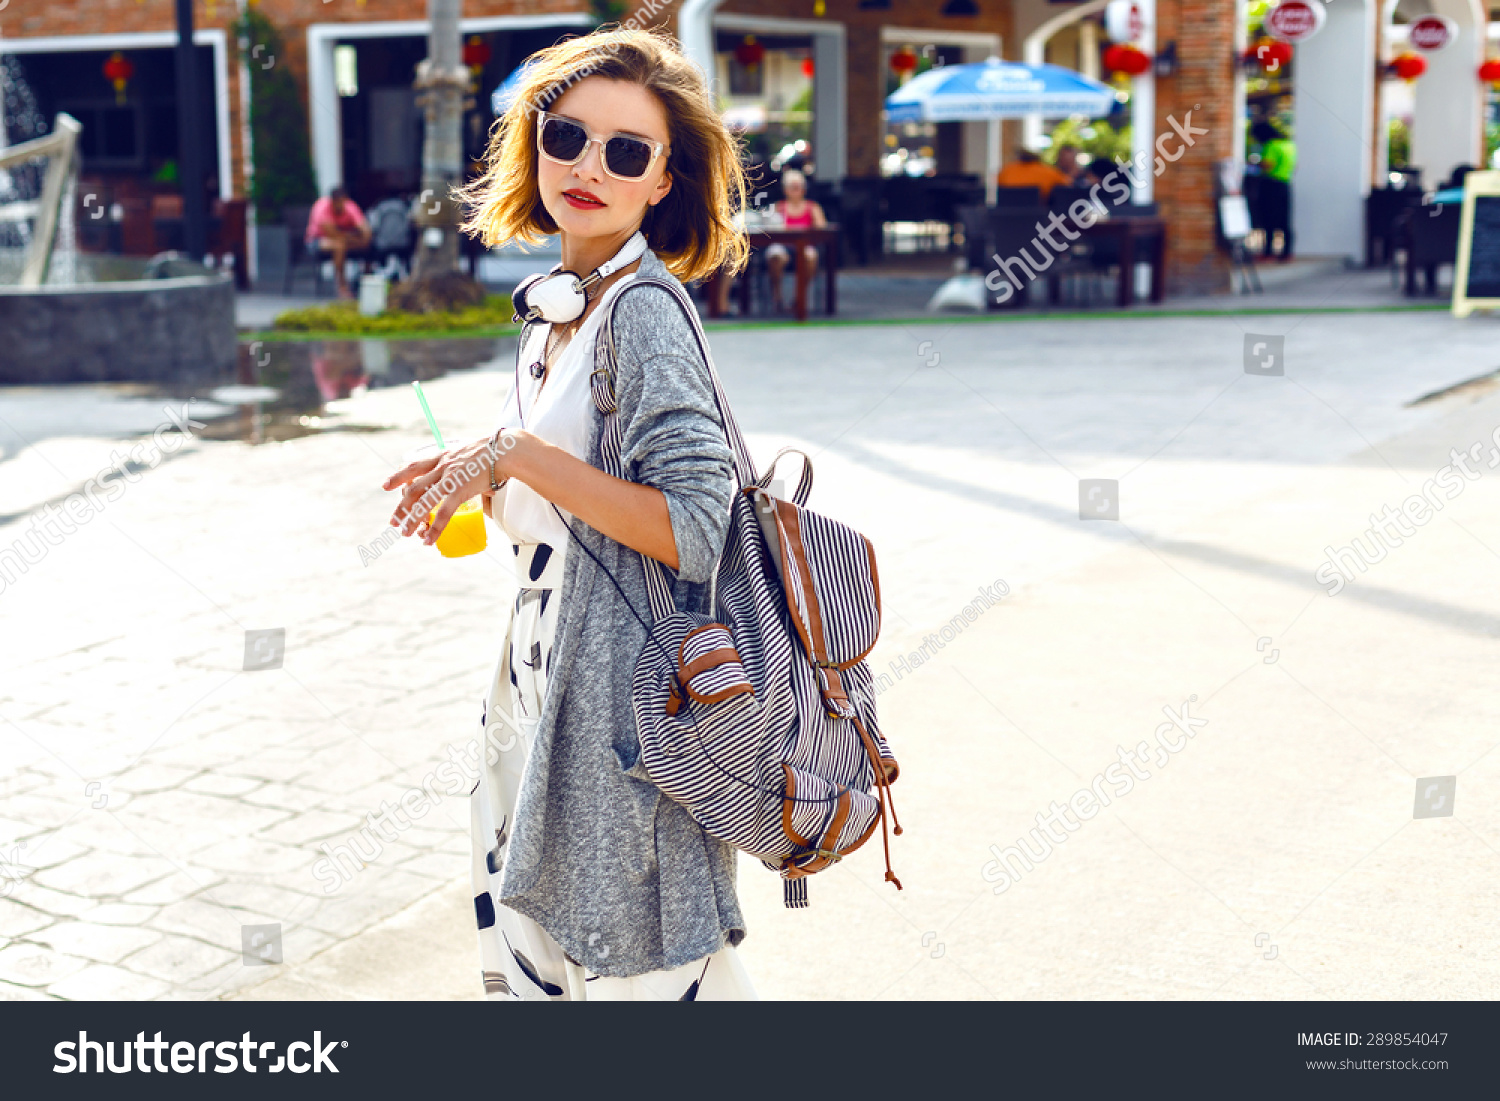 Summer Sunny Lifestyle Fashion Portrait Young Stock Photo 289854047 Shutterstock